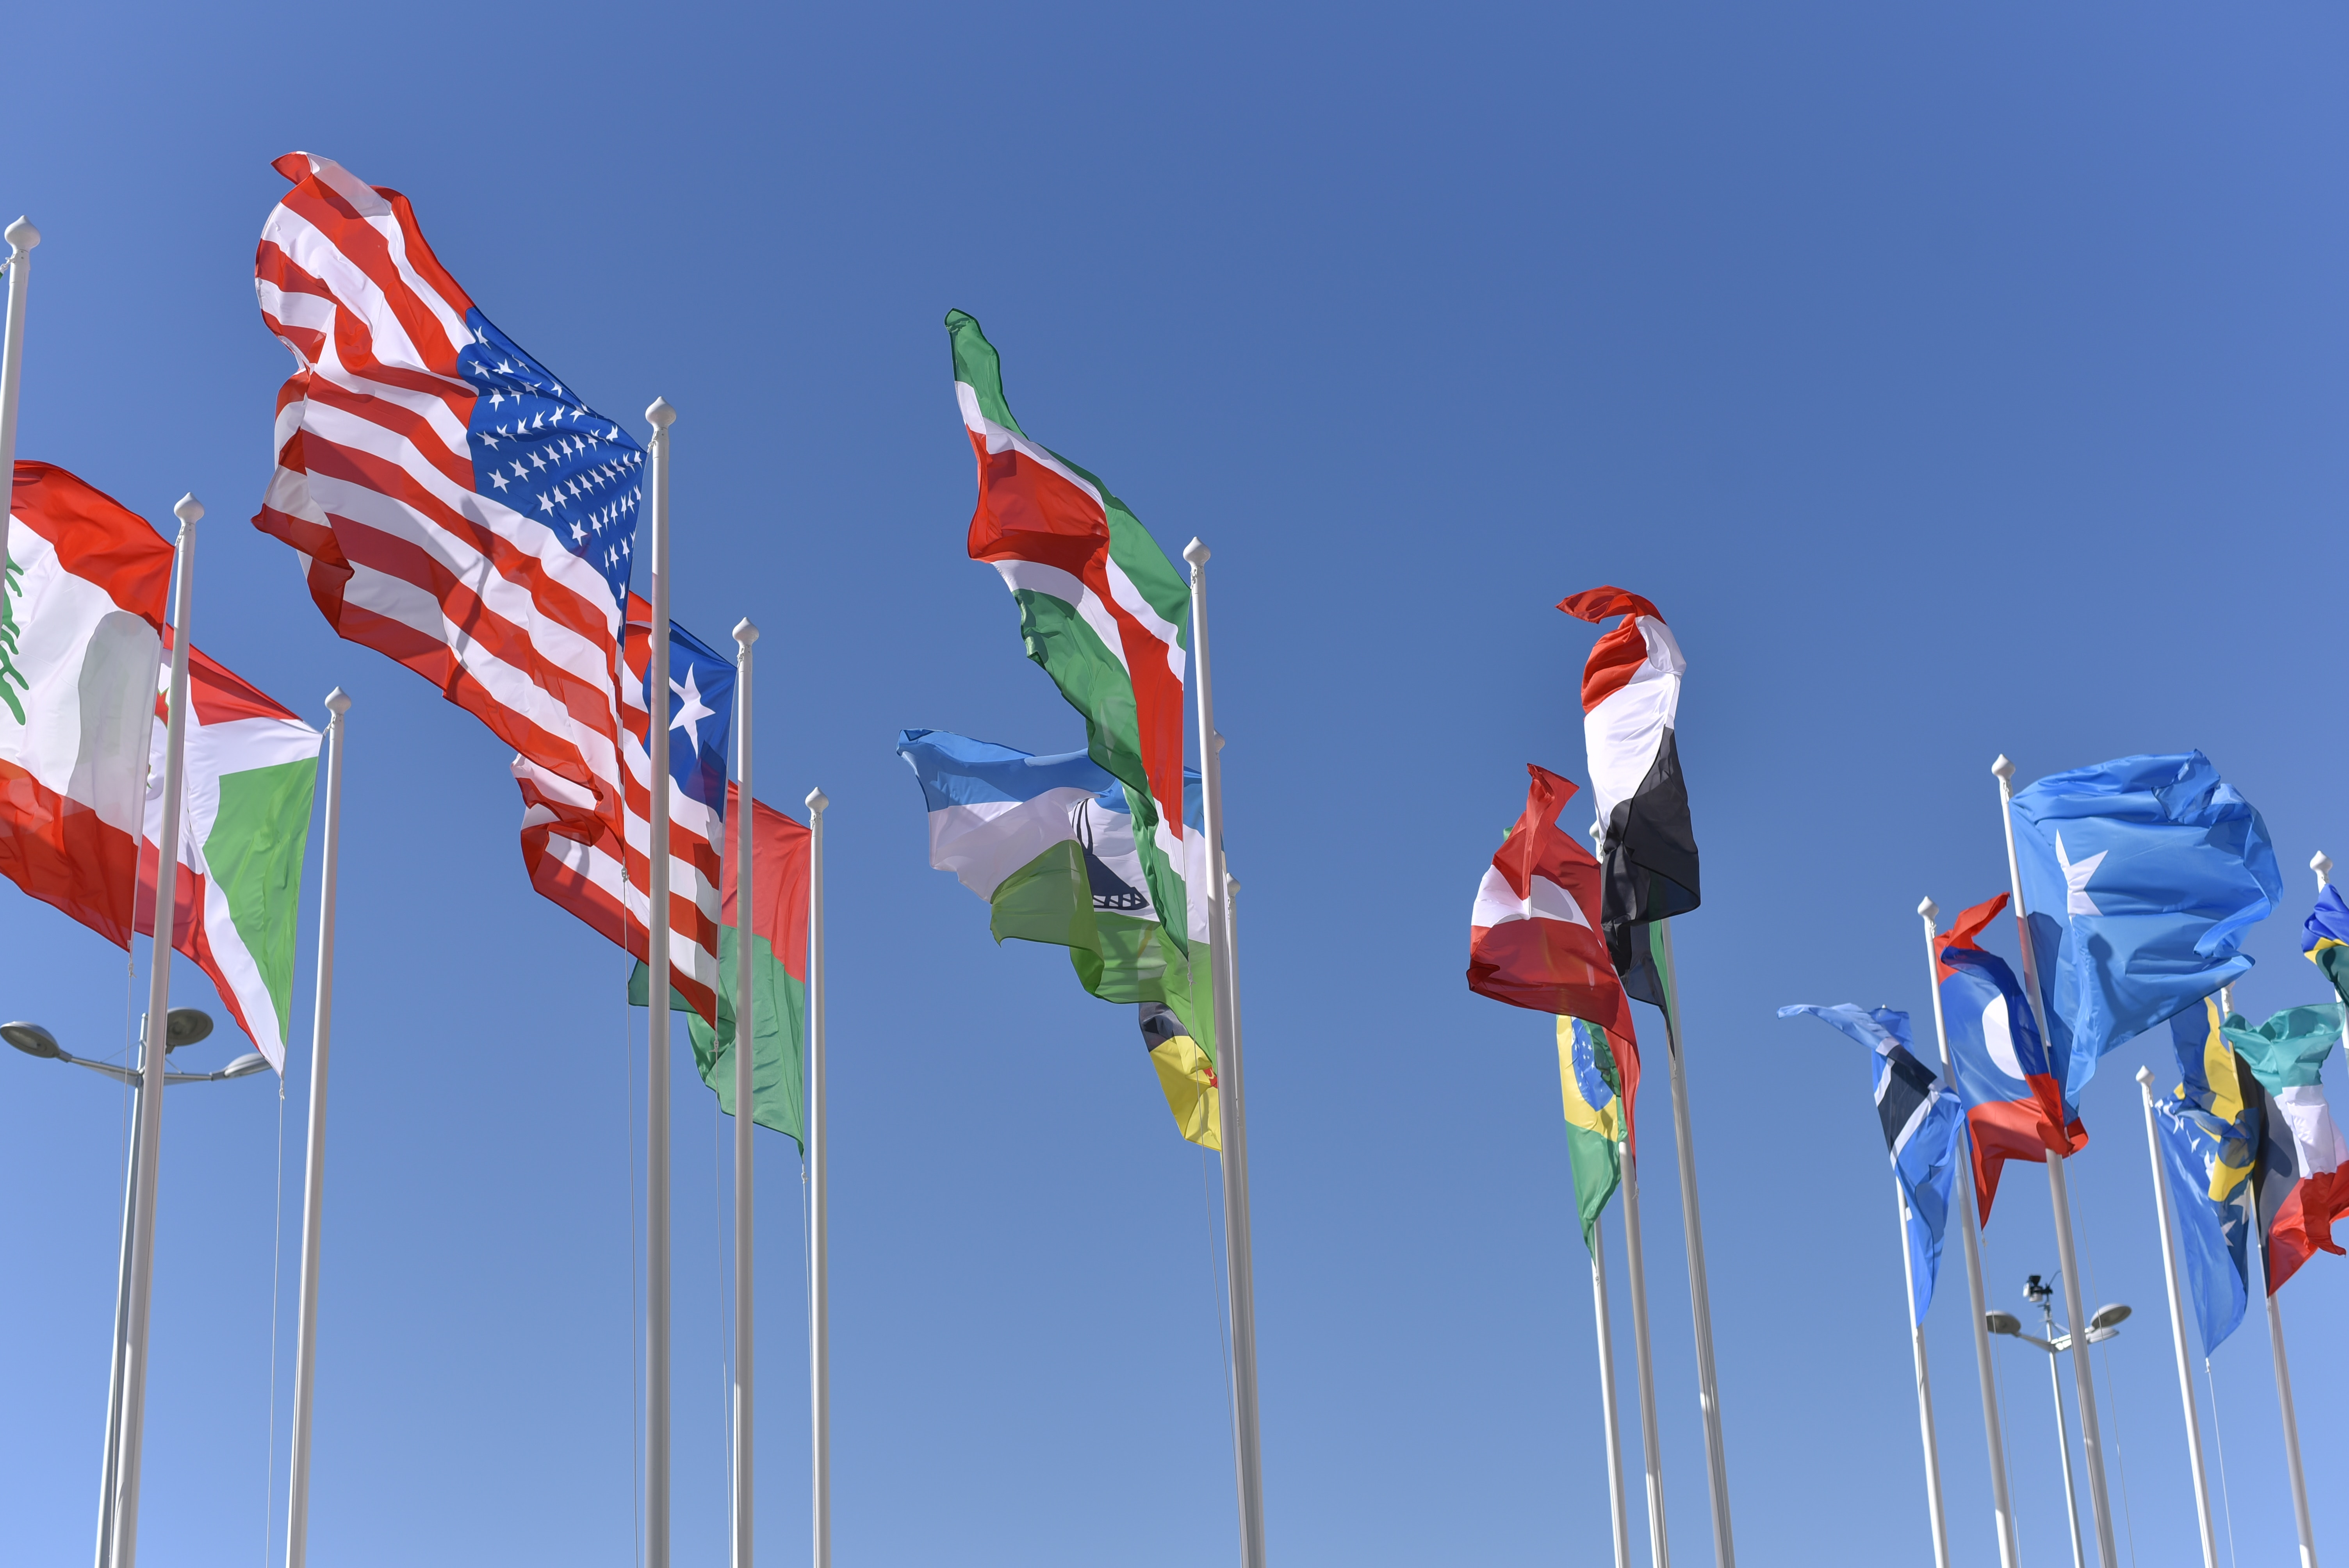 An image showing flags of different nations, all of which can be reache with a good multilingual SEO strategy.